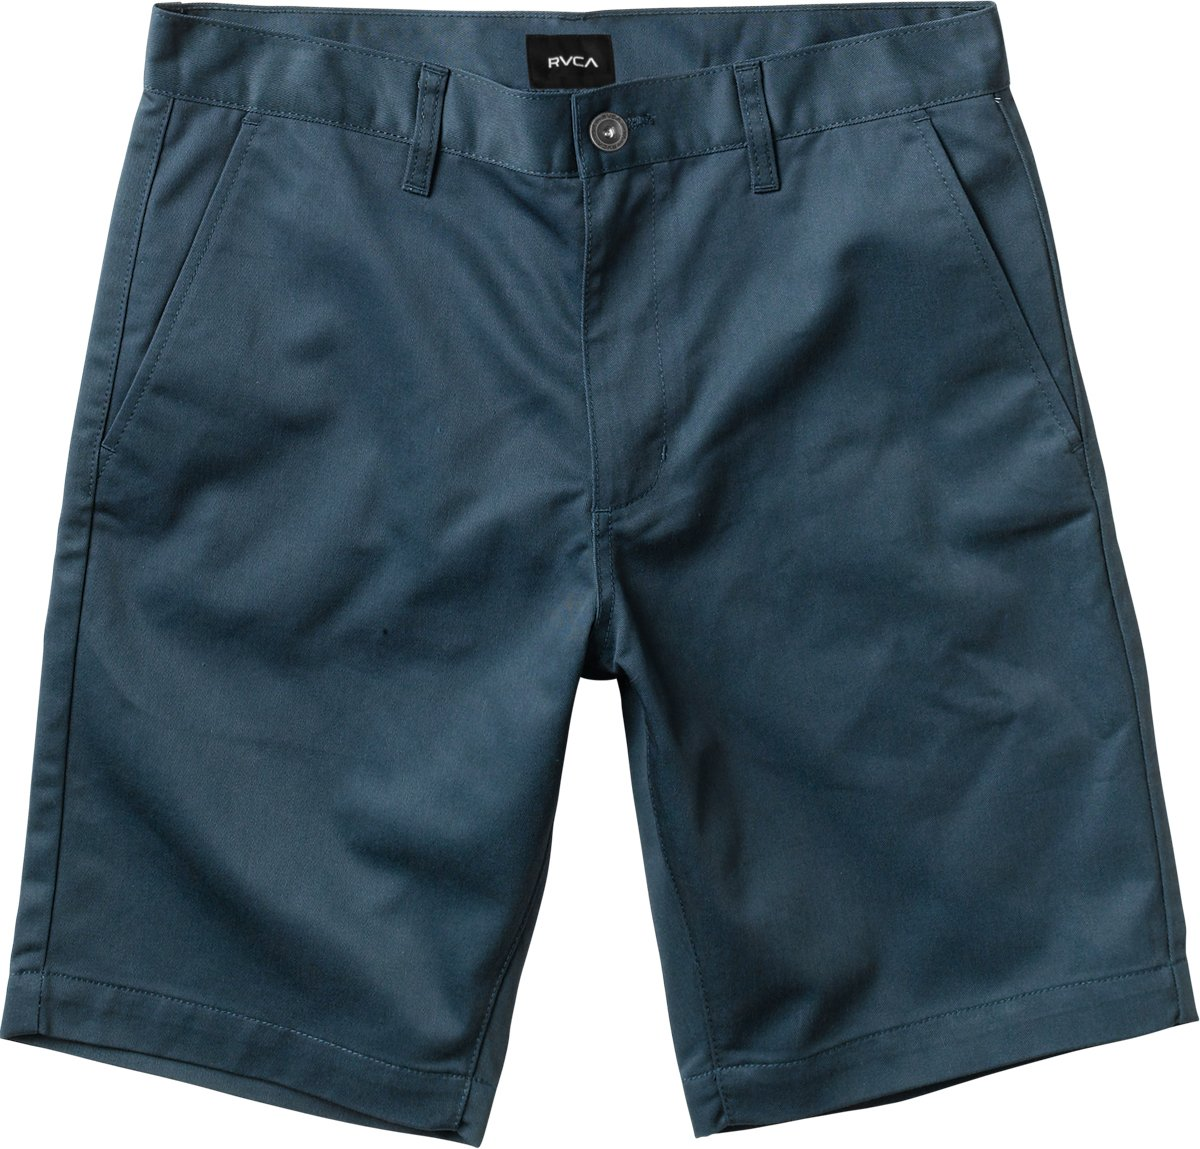 RVCA Men's Wk-End Strch Shrt, Midnight, 32